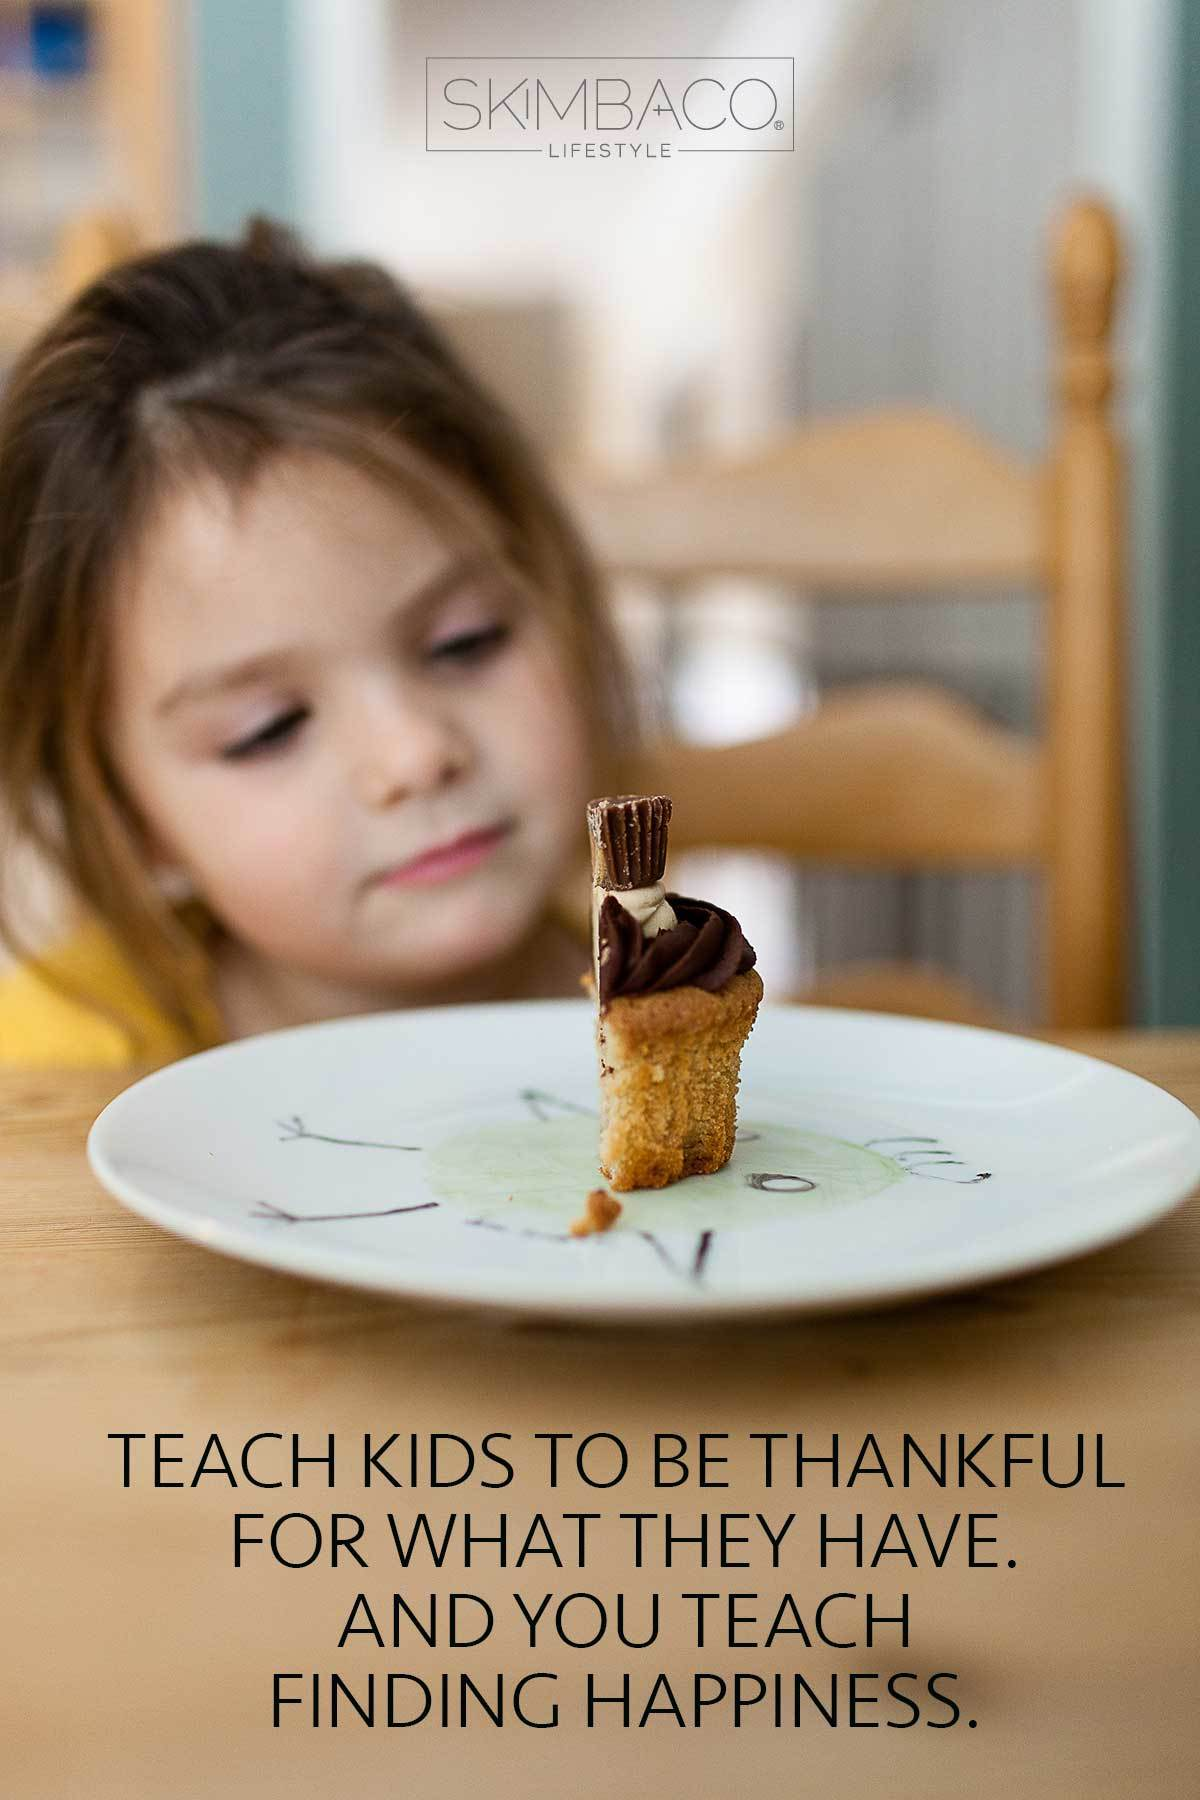 Teach children to be thankful for what they have. And you teach finding happiness. @skimbaco